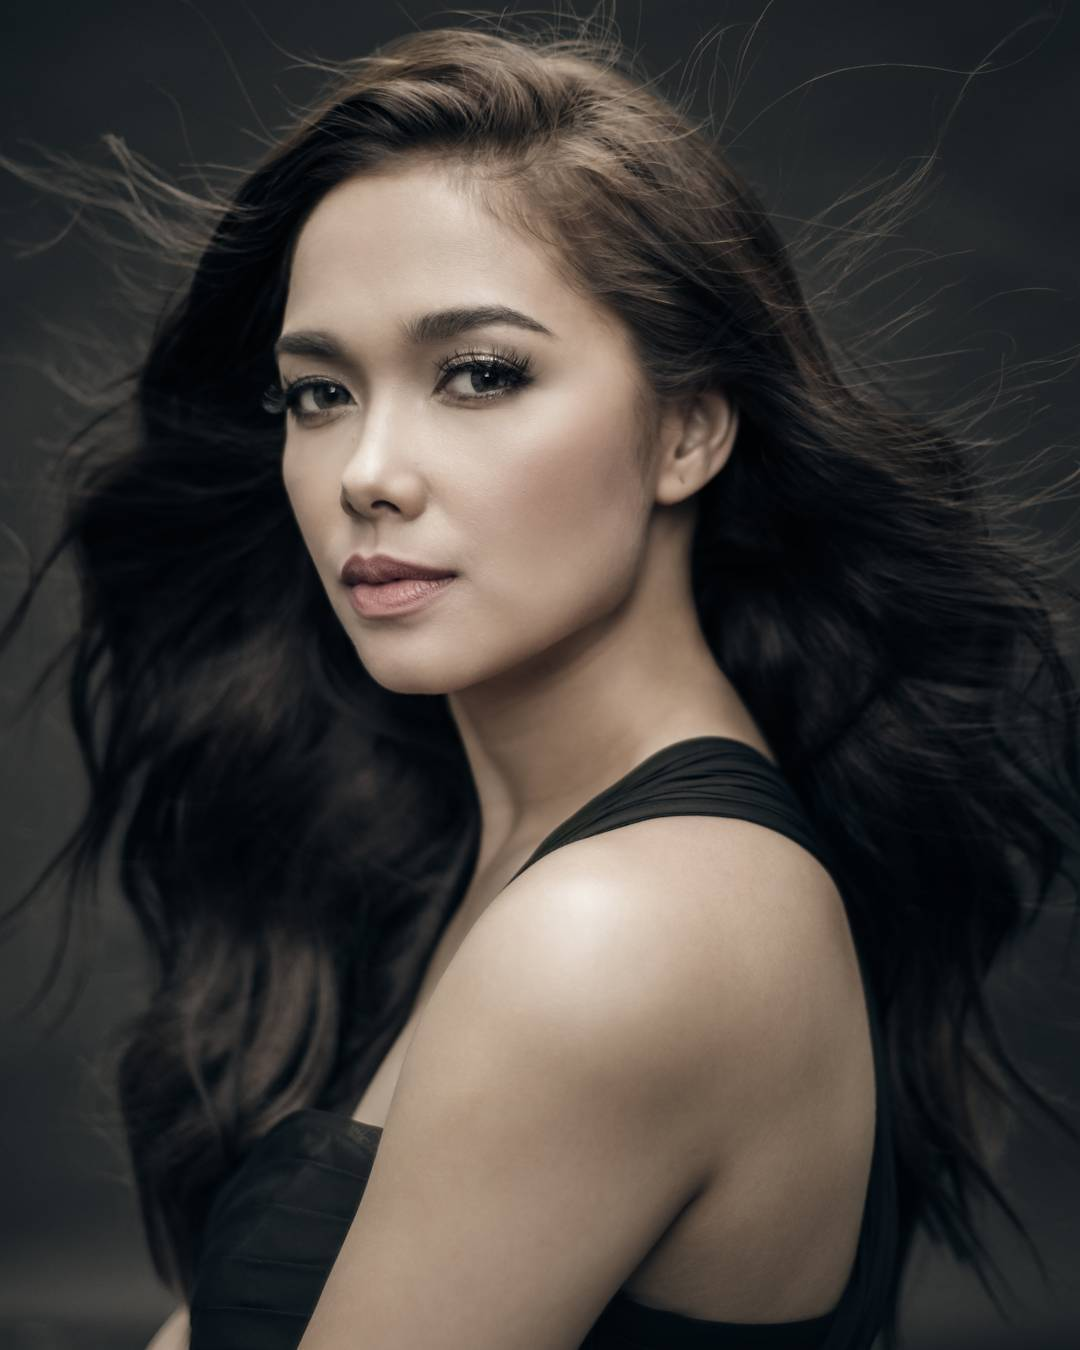 Maja Salvador (b. 1988) nudes (93 photo), Topless, Fappening, Selfie, braless 2017